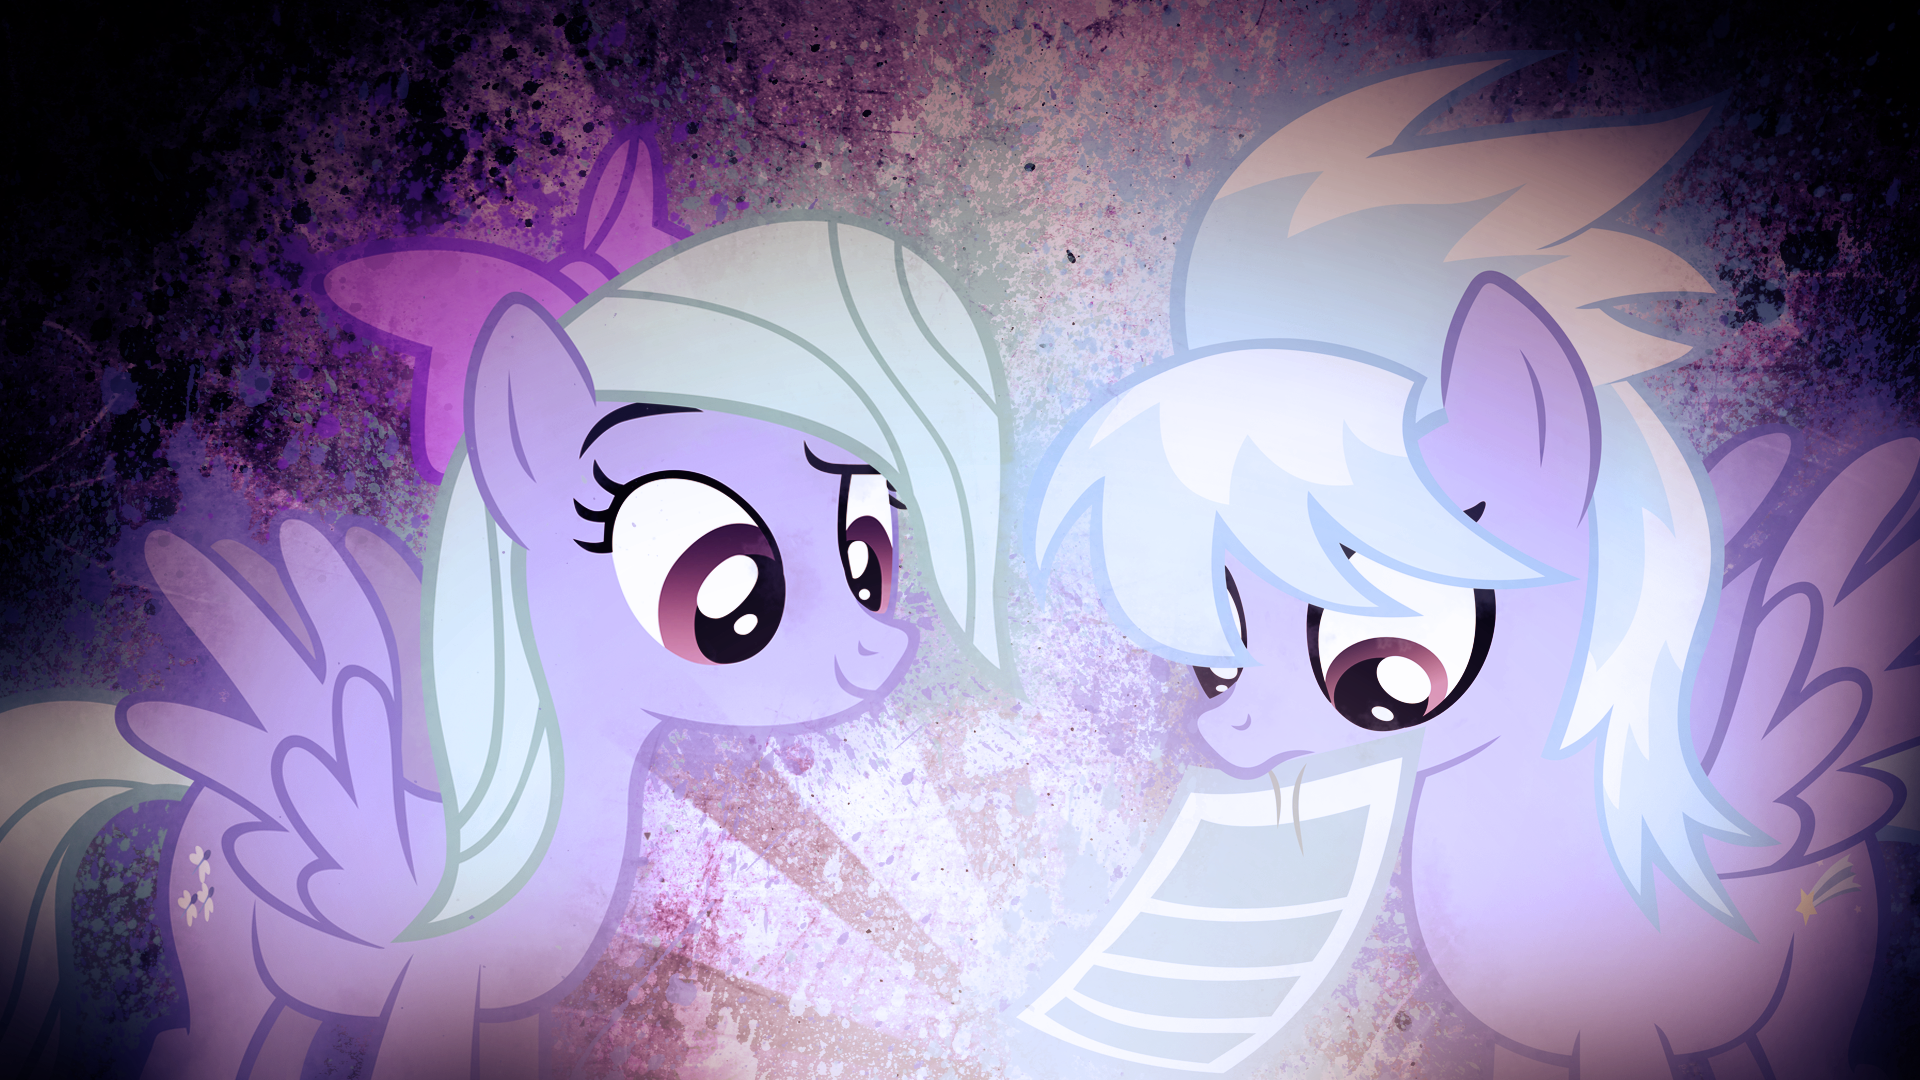 Flitter and Cloudchaser Wallpaper-Delta105 Collab by BakaBrony, ikillyou121, SandwichDelta and TygerxL